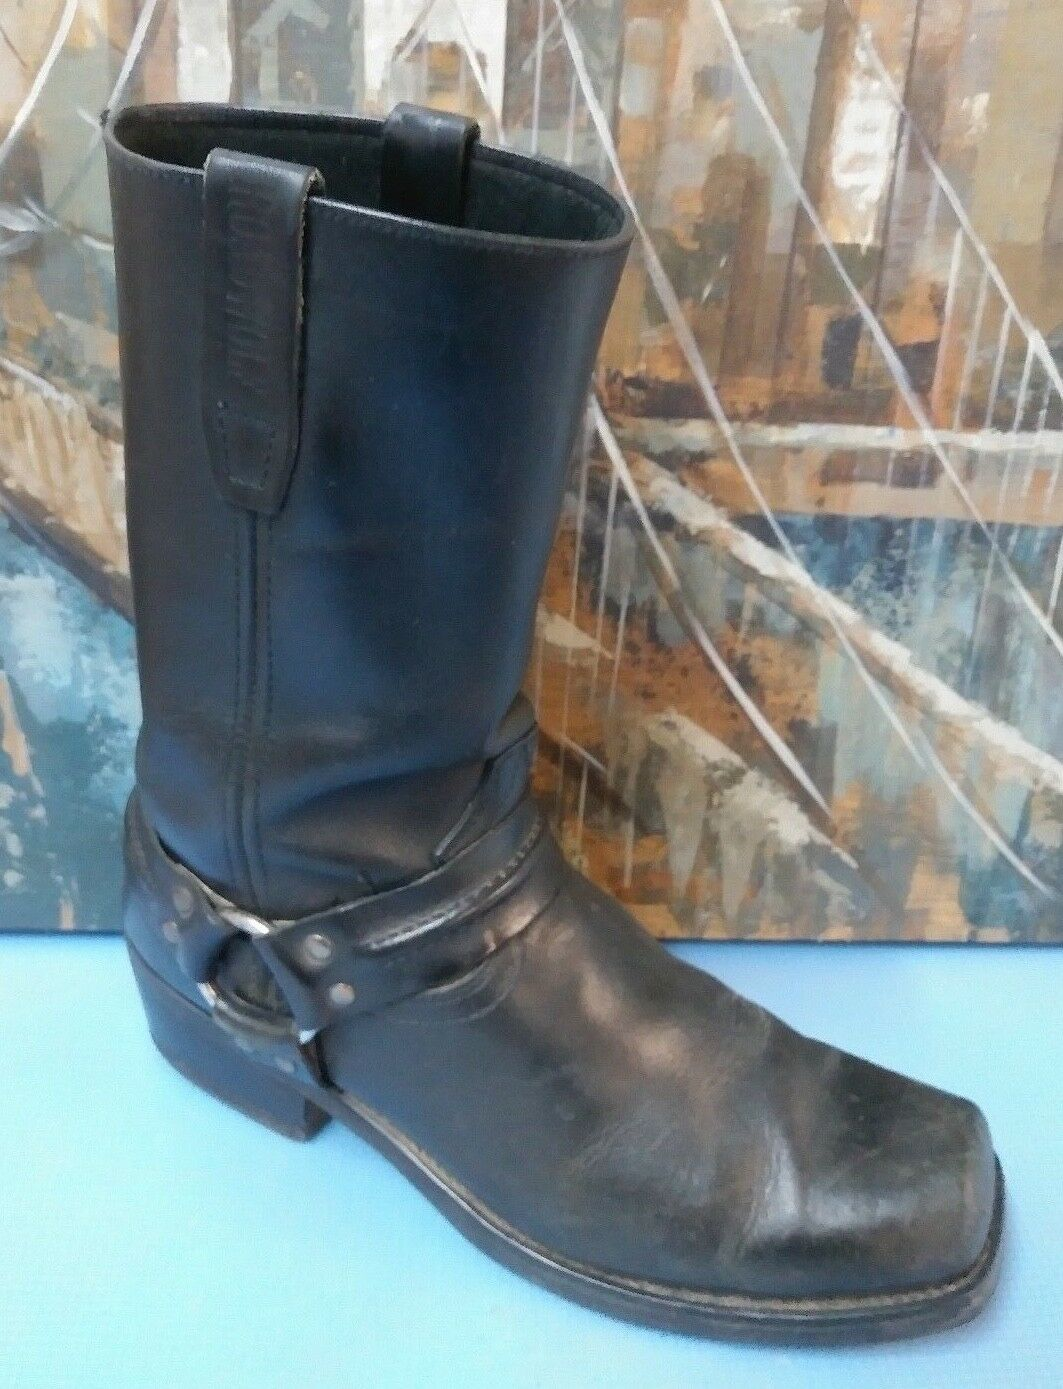 Road Wolf Wolf Road Mens Black Harness Boots 1070 Size 10 M 7fddc3